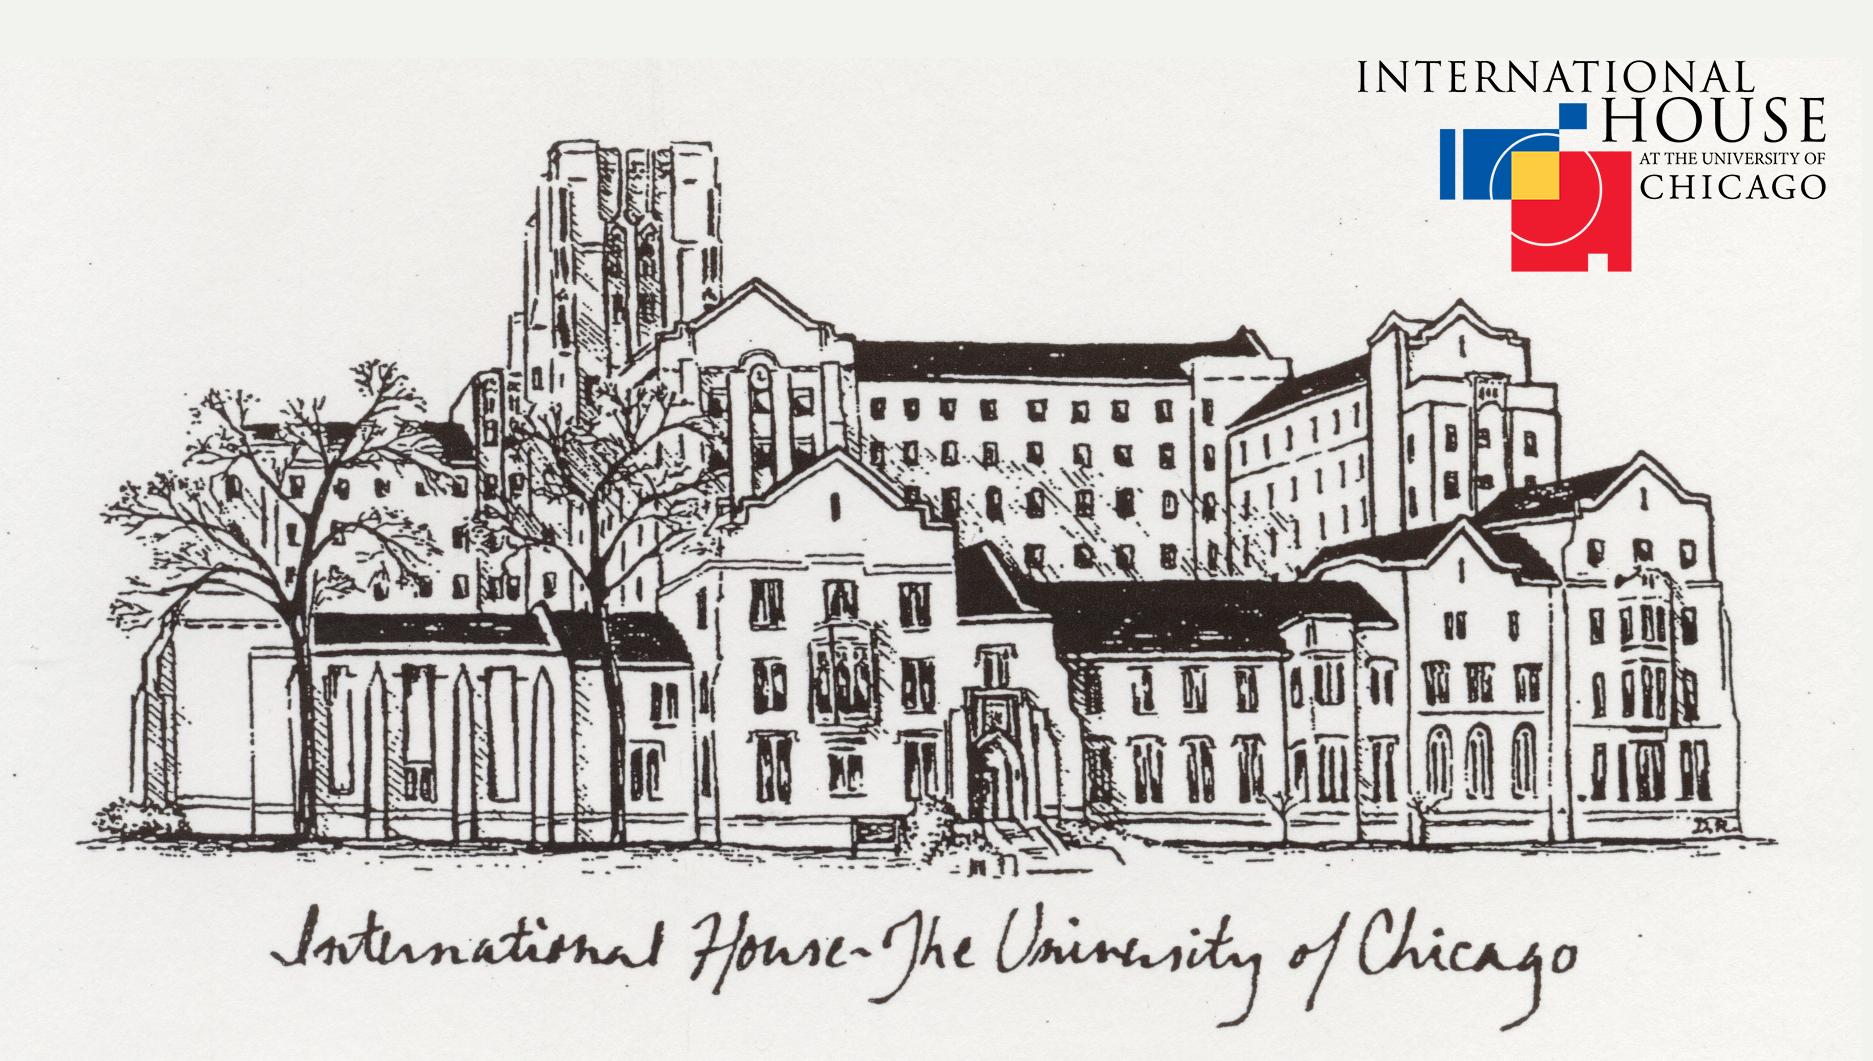 International house at the university of chicago for International housse